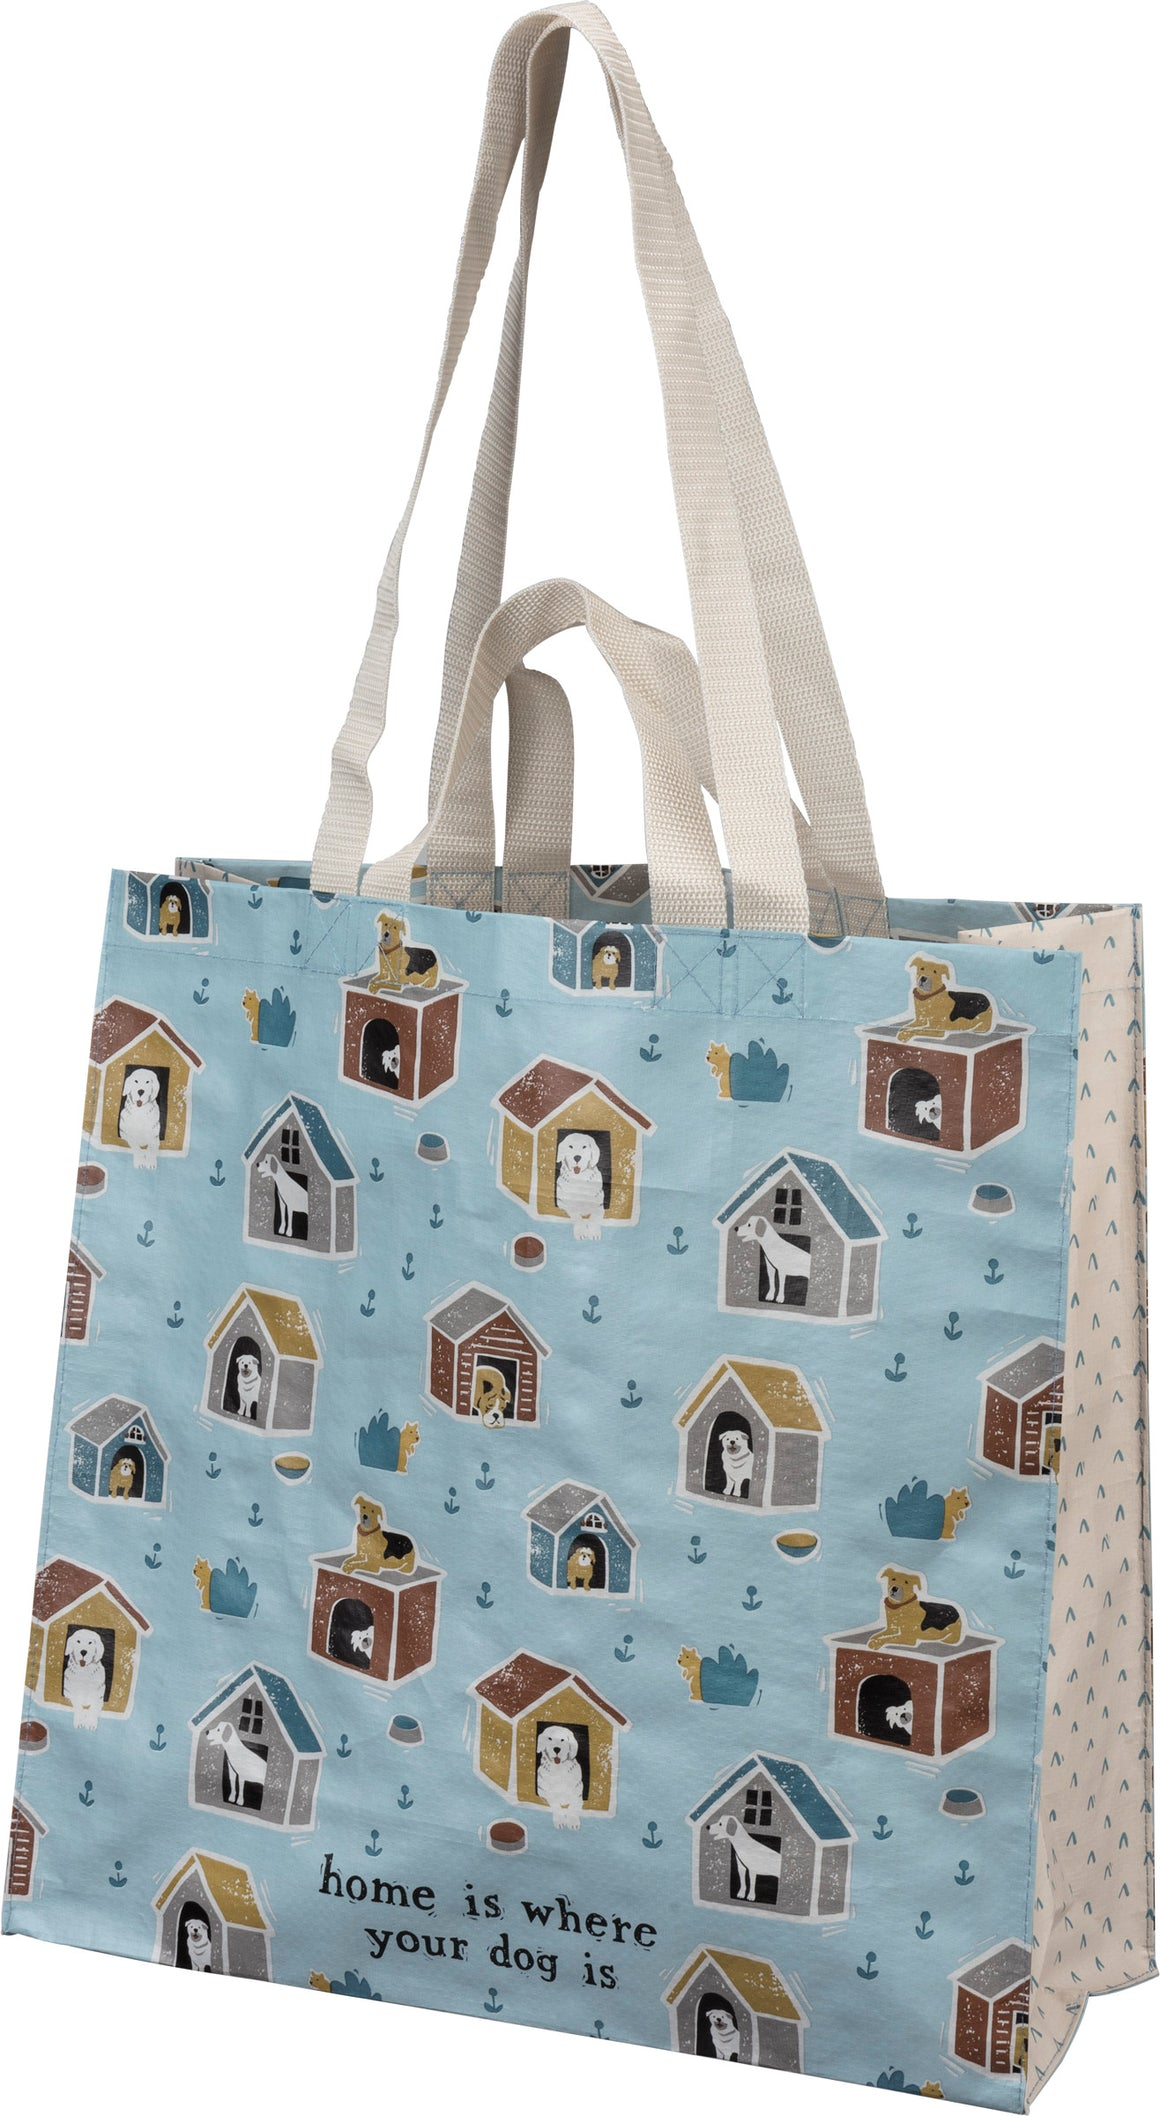 Home Is Where Your Dog Is Market Tote